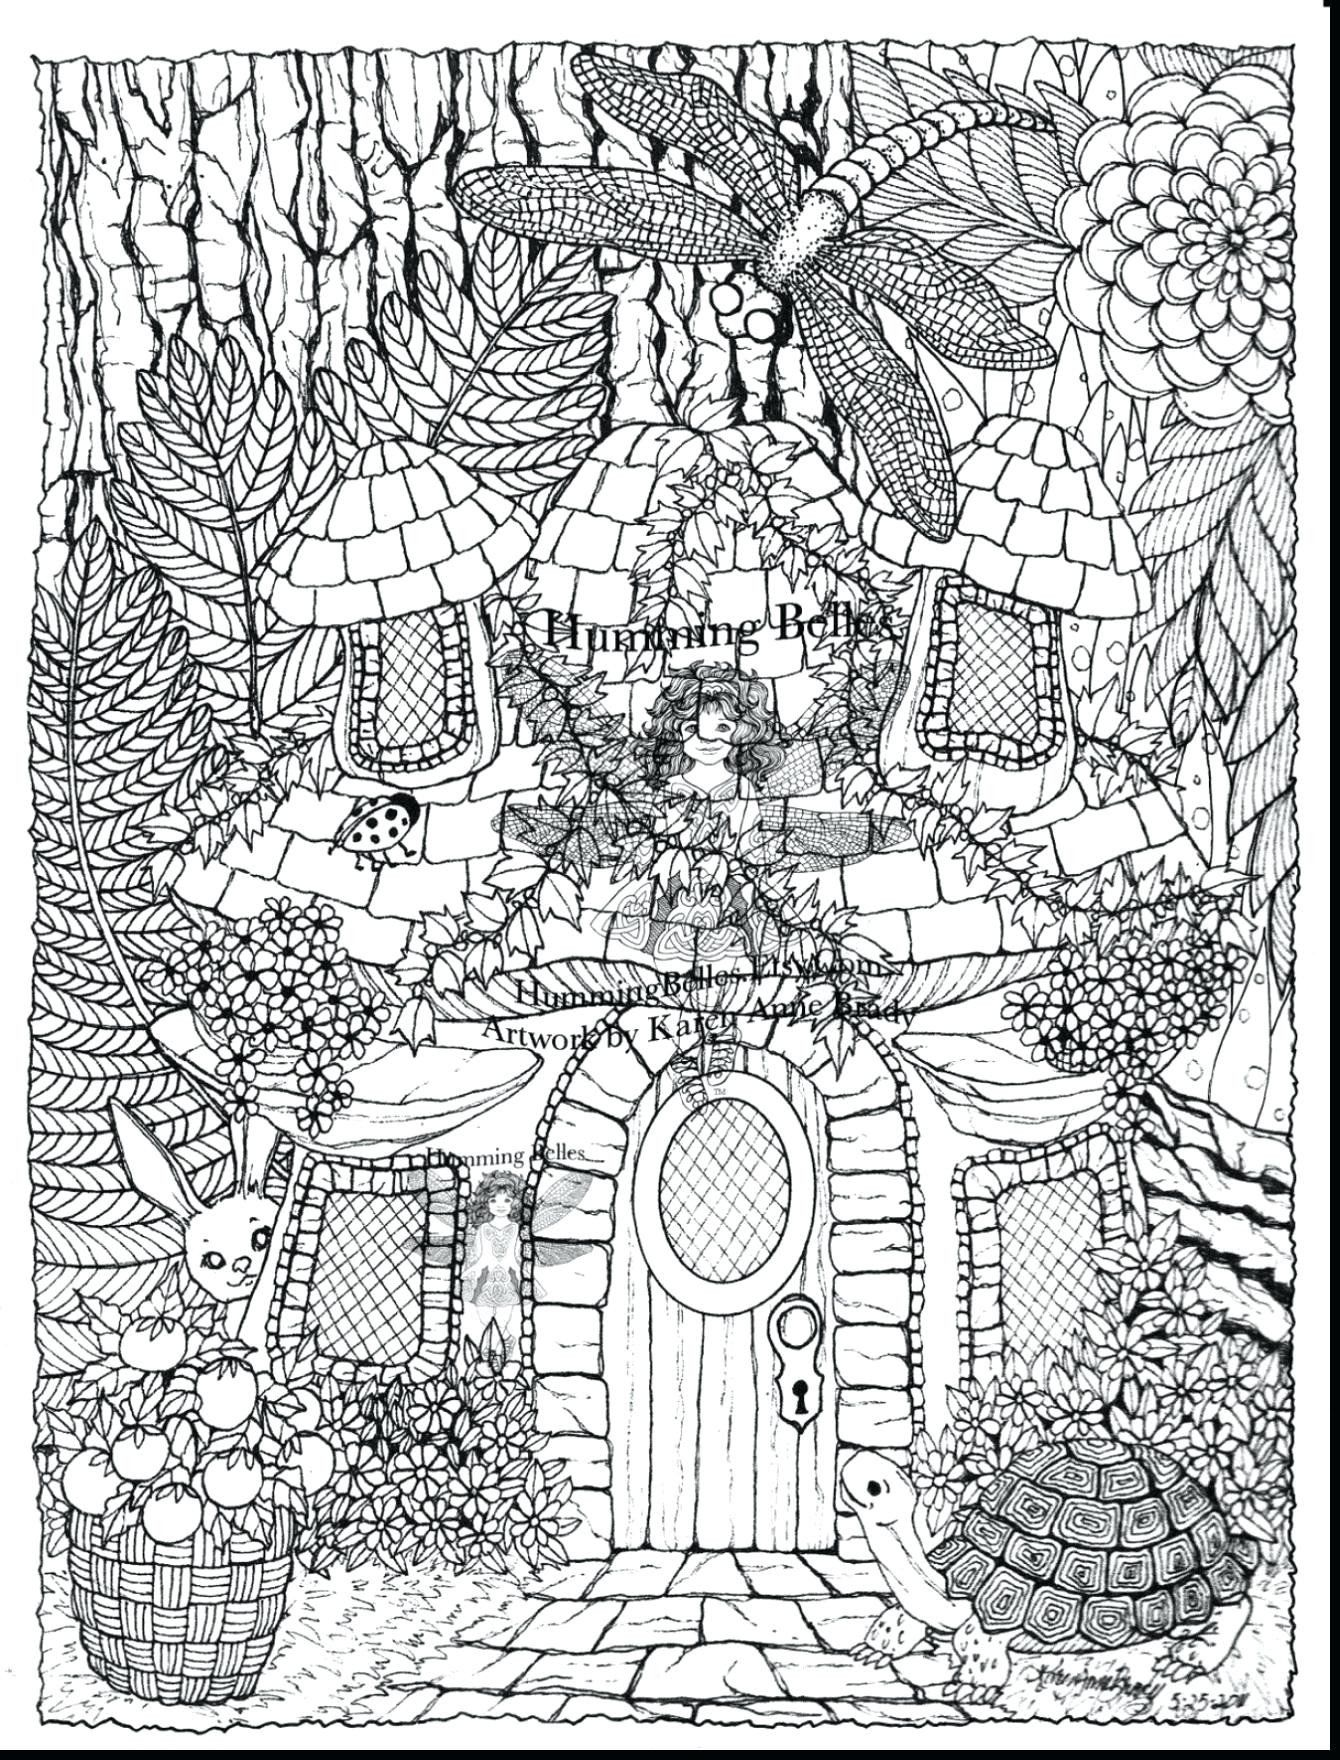 Hard Coloring Pages For Kids Coloring Pages Disneying Sheets For Kids Very Hard Adults In 2020 Detailed Coloring Pages Coloring Pages Nature Turtle Coloring Pages